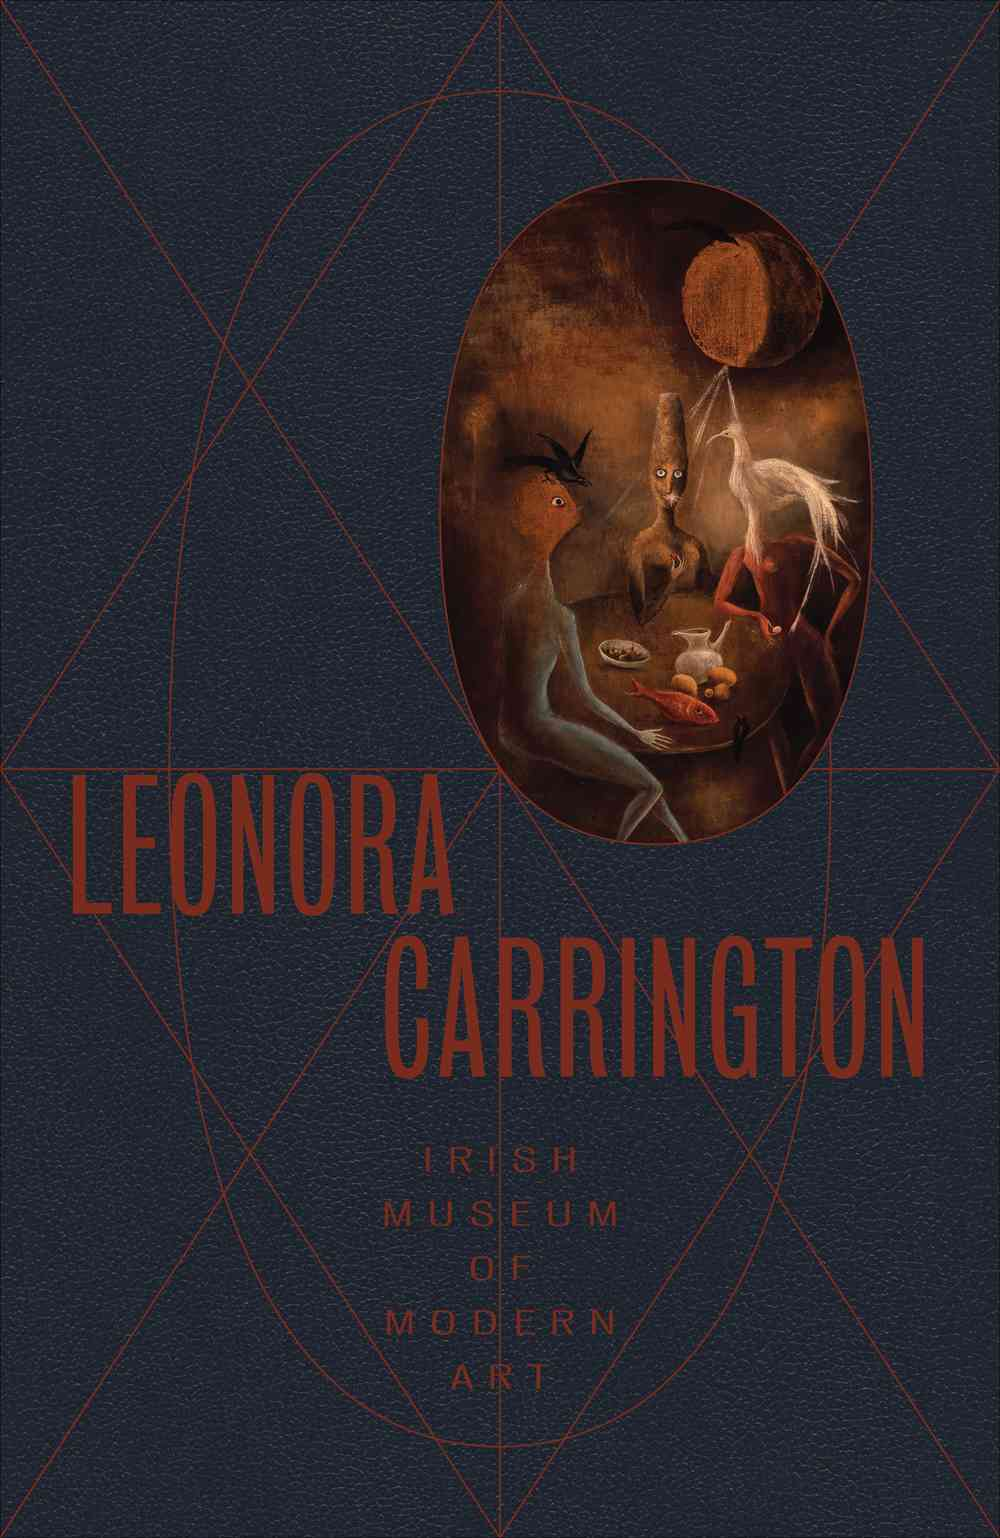 Leonora Carrington By Carrington, Leonora